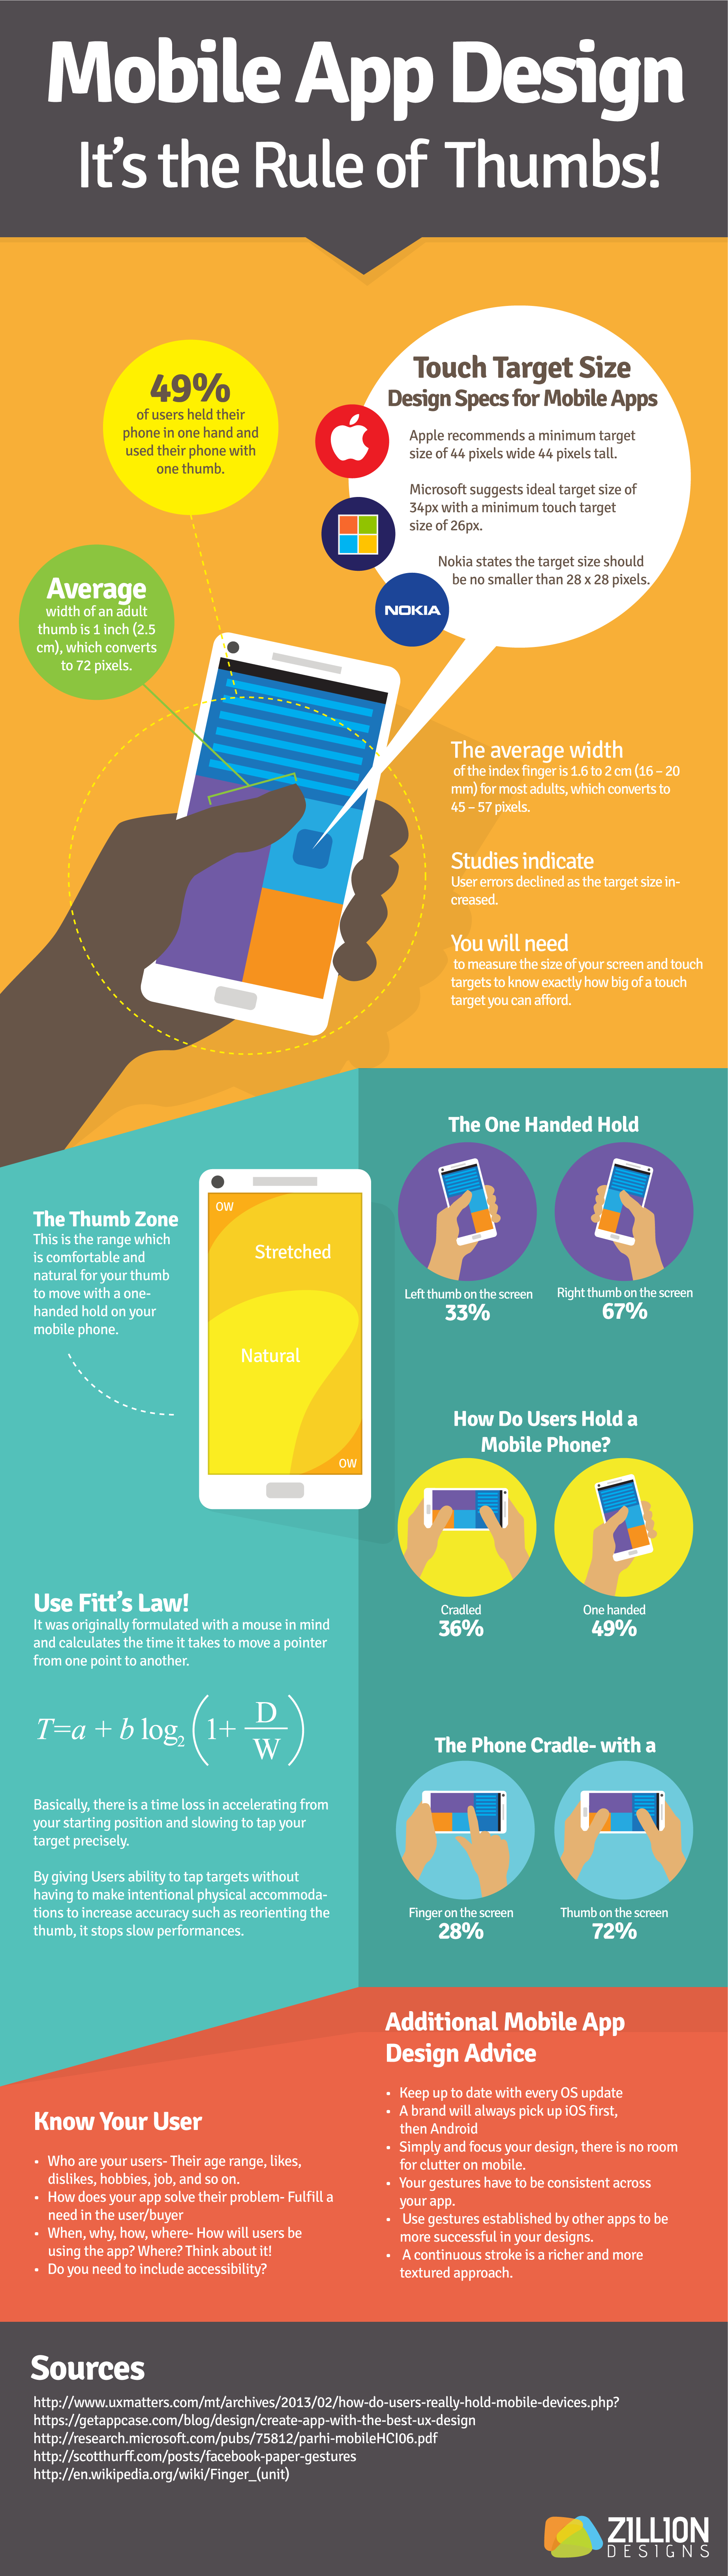 Infographic - Mobile App Design: It's the Rule of Thumbs